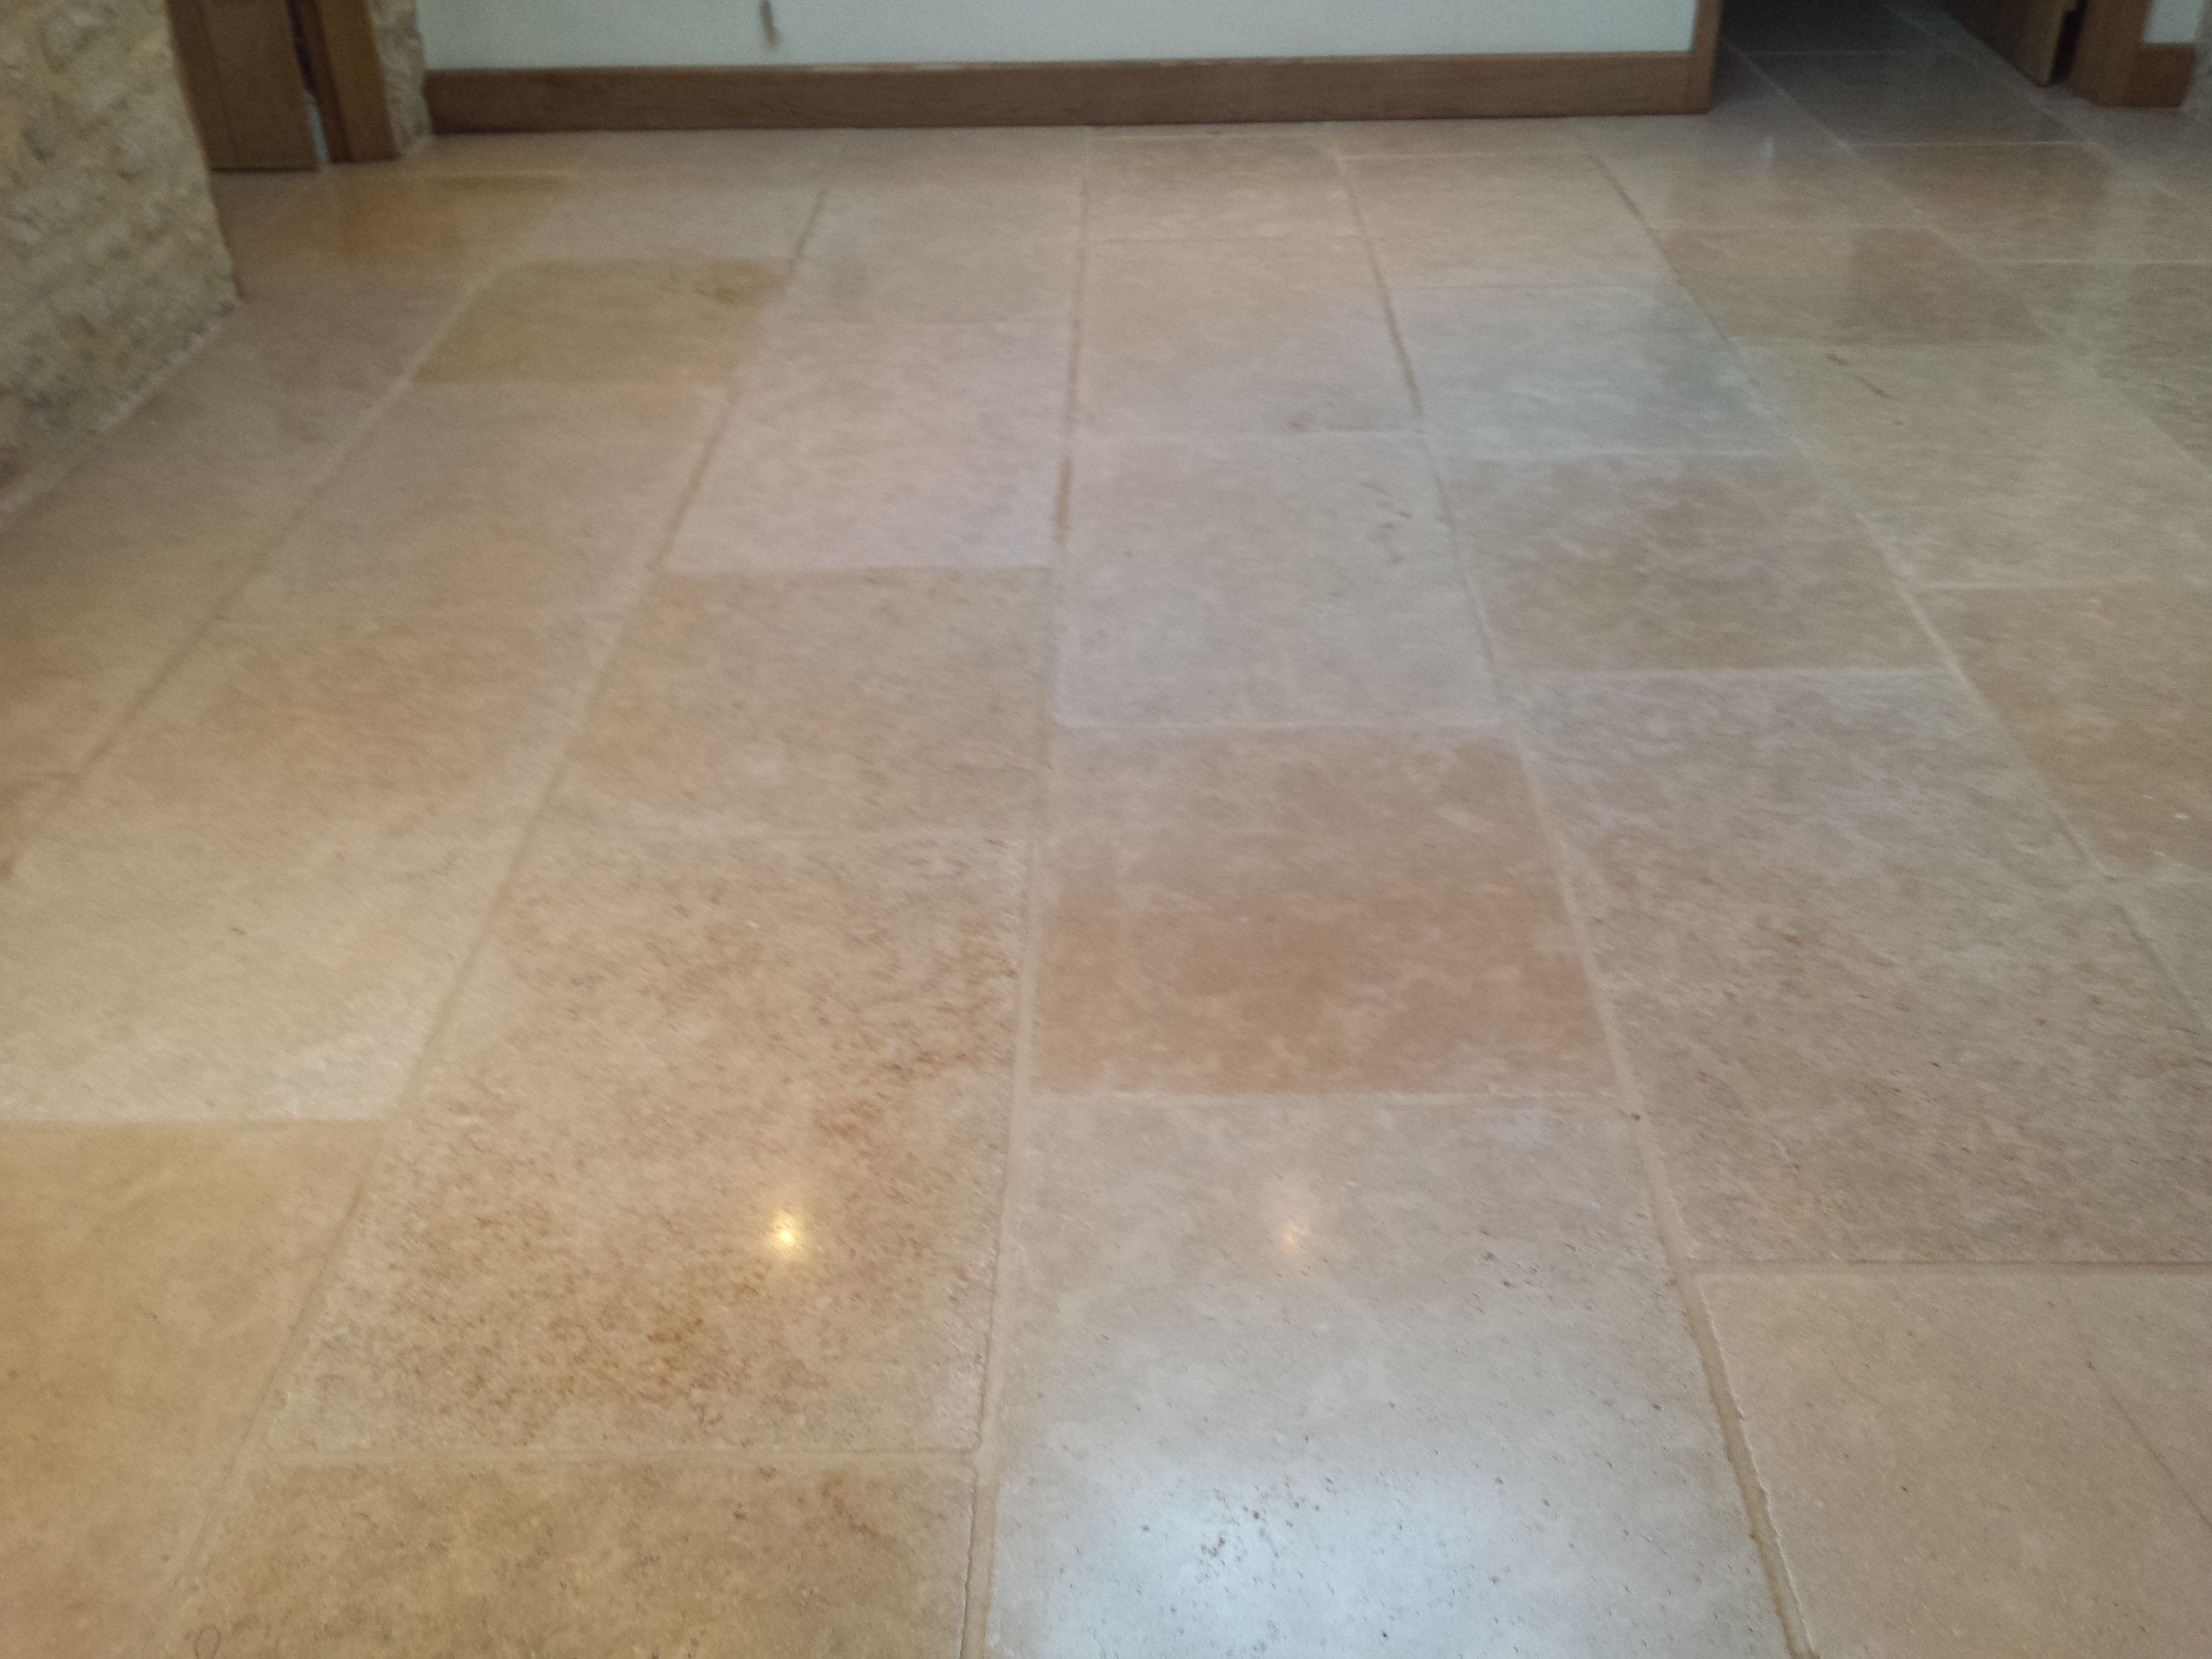 Limestone cleaning oxford floor restore oxford ltd floor restore oxford ltd offer limestone floor cleaning in oxfordshire and parts of the surrounding counties as well as other stones such as marble and dailygadgetfo Images